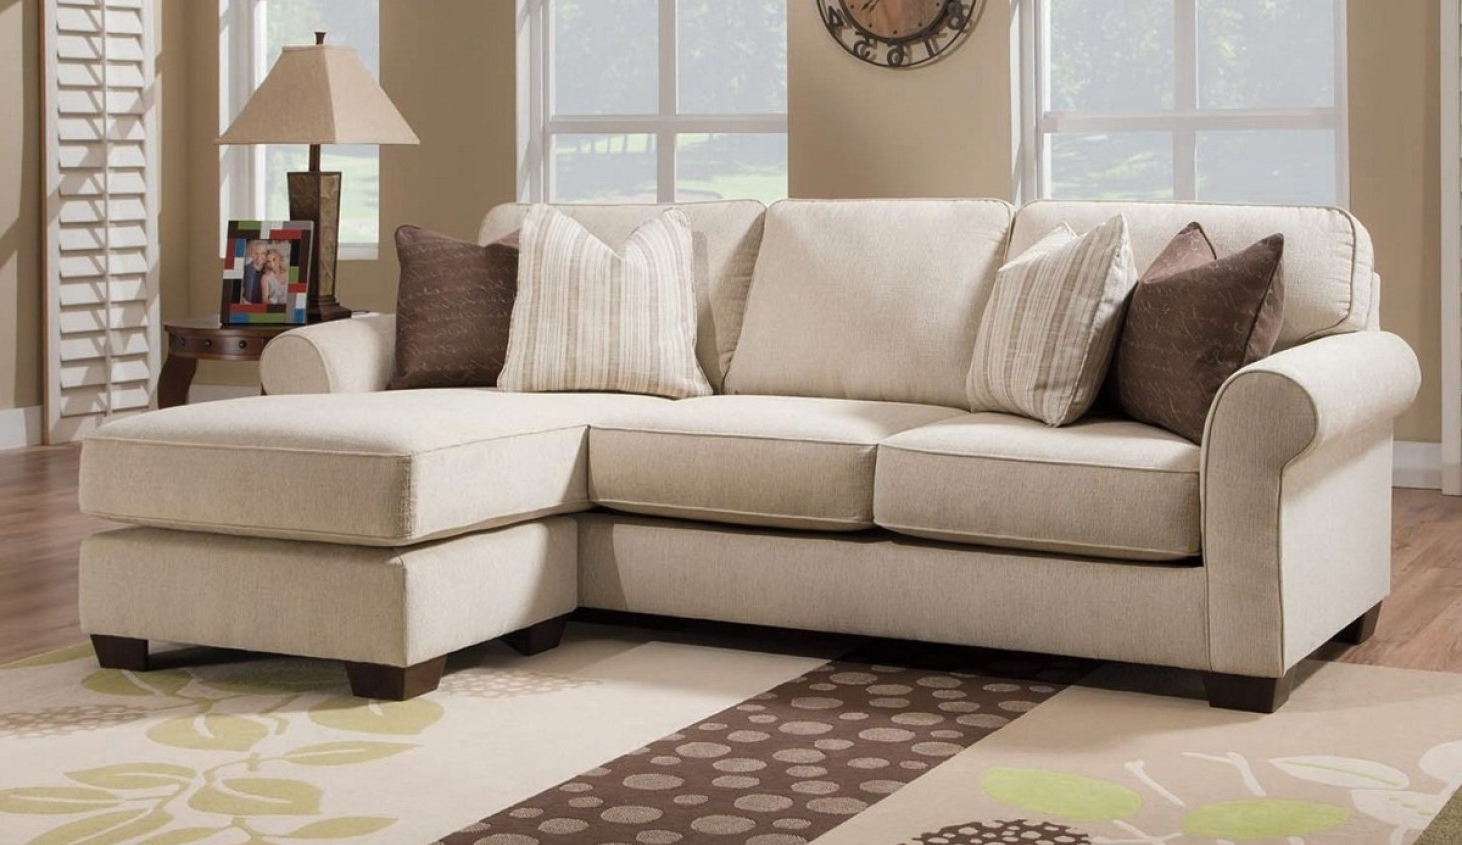 Gallery Austin Sectional Sofa – Mediasupload Within Best And Newest Austin Sectional Sofas (View 9 of 20)